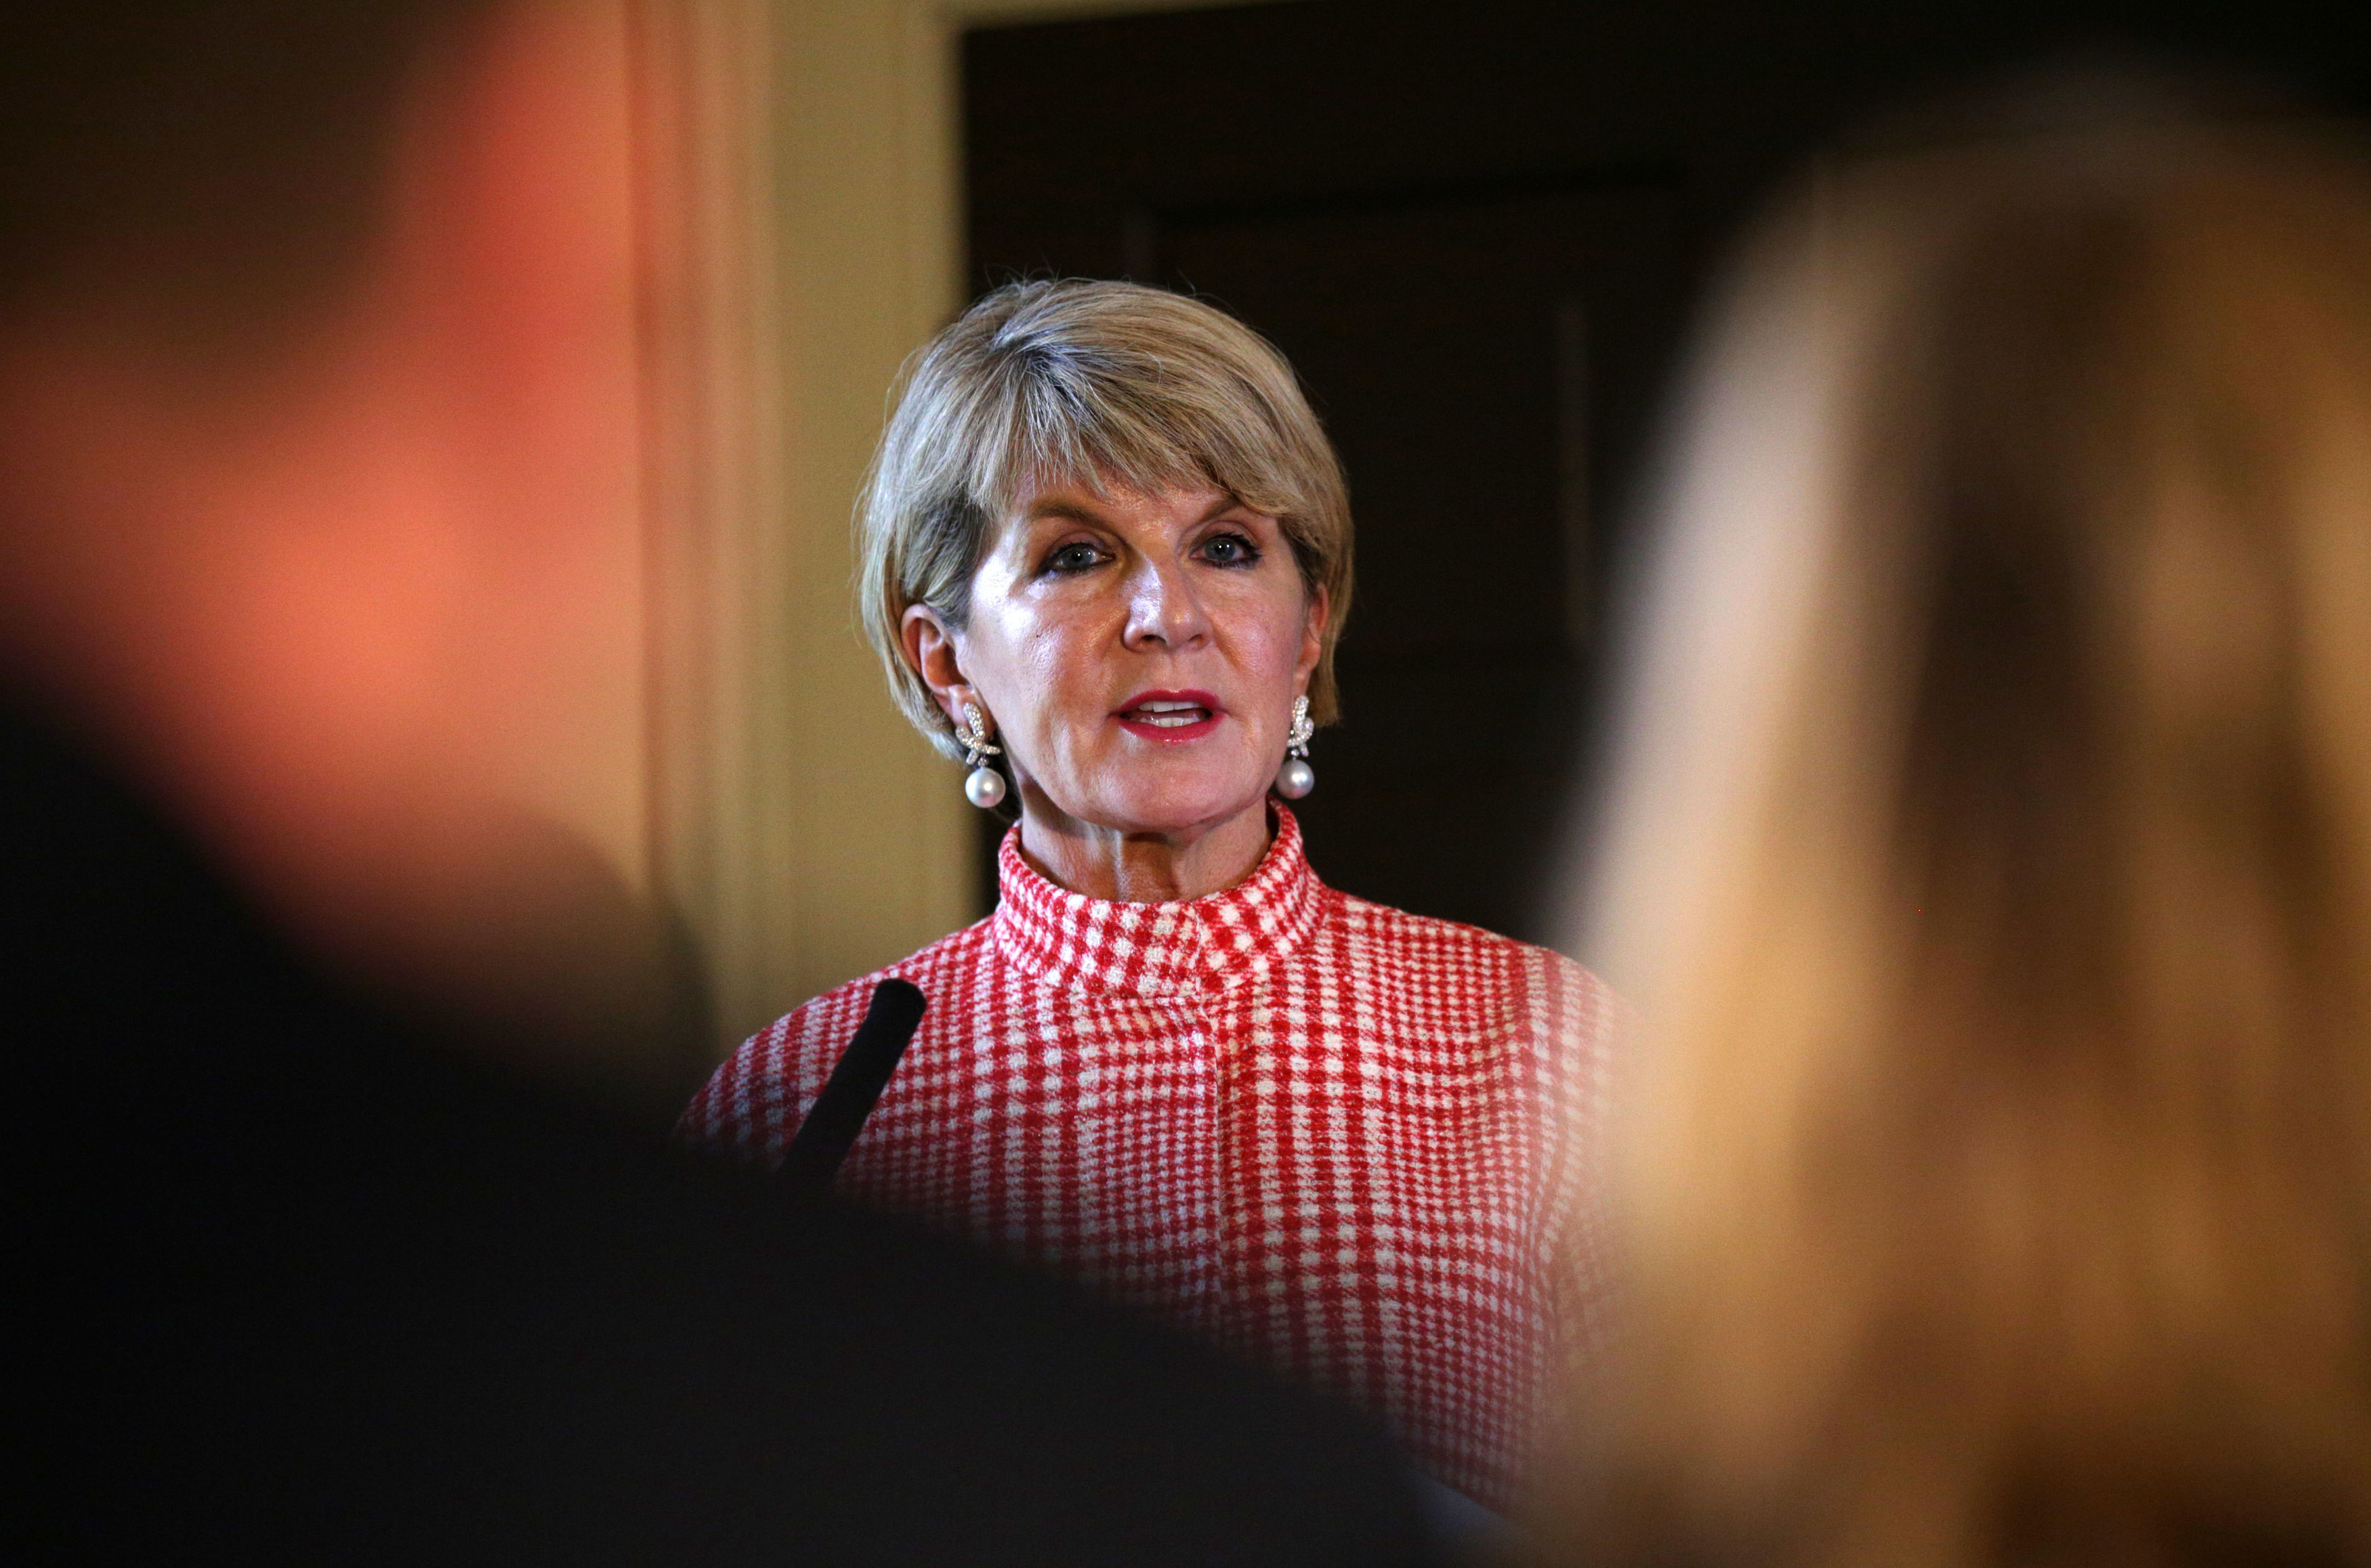 Julie Bishop came in third on the list. Credit: PA